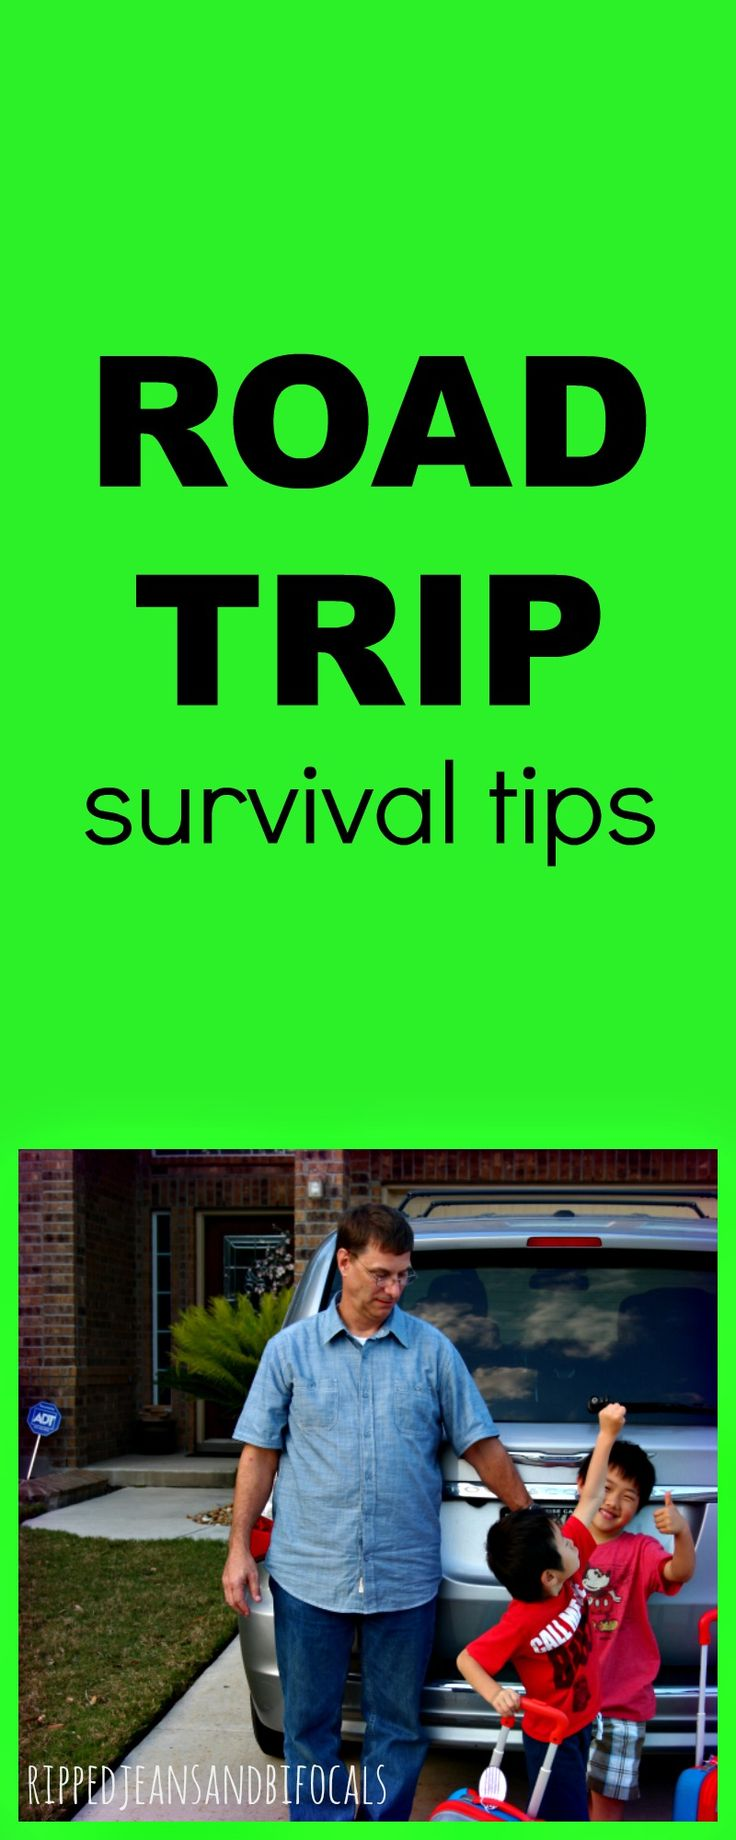 Road Trip Survival Tips|Ripped Jeans and Bifocals